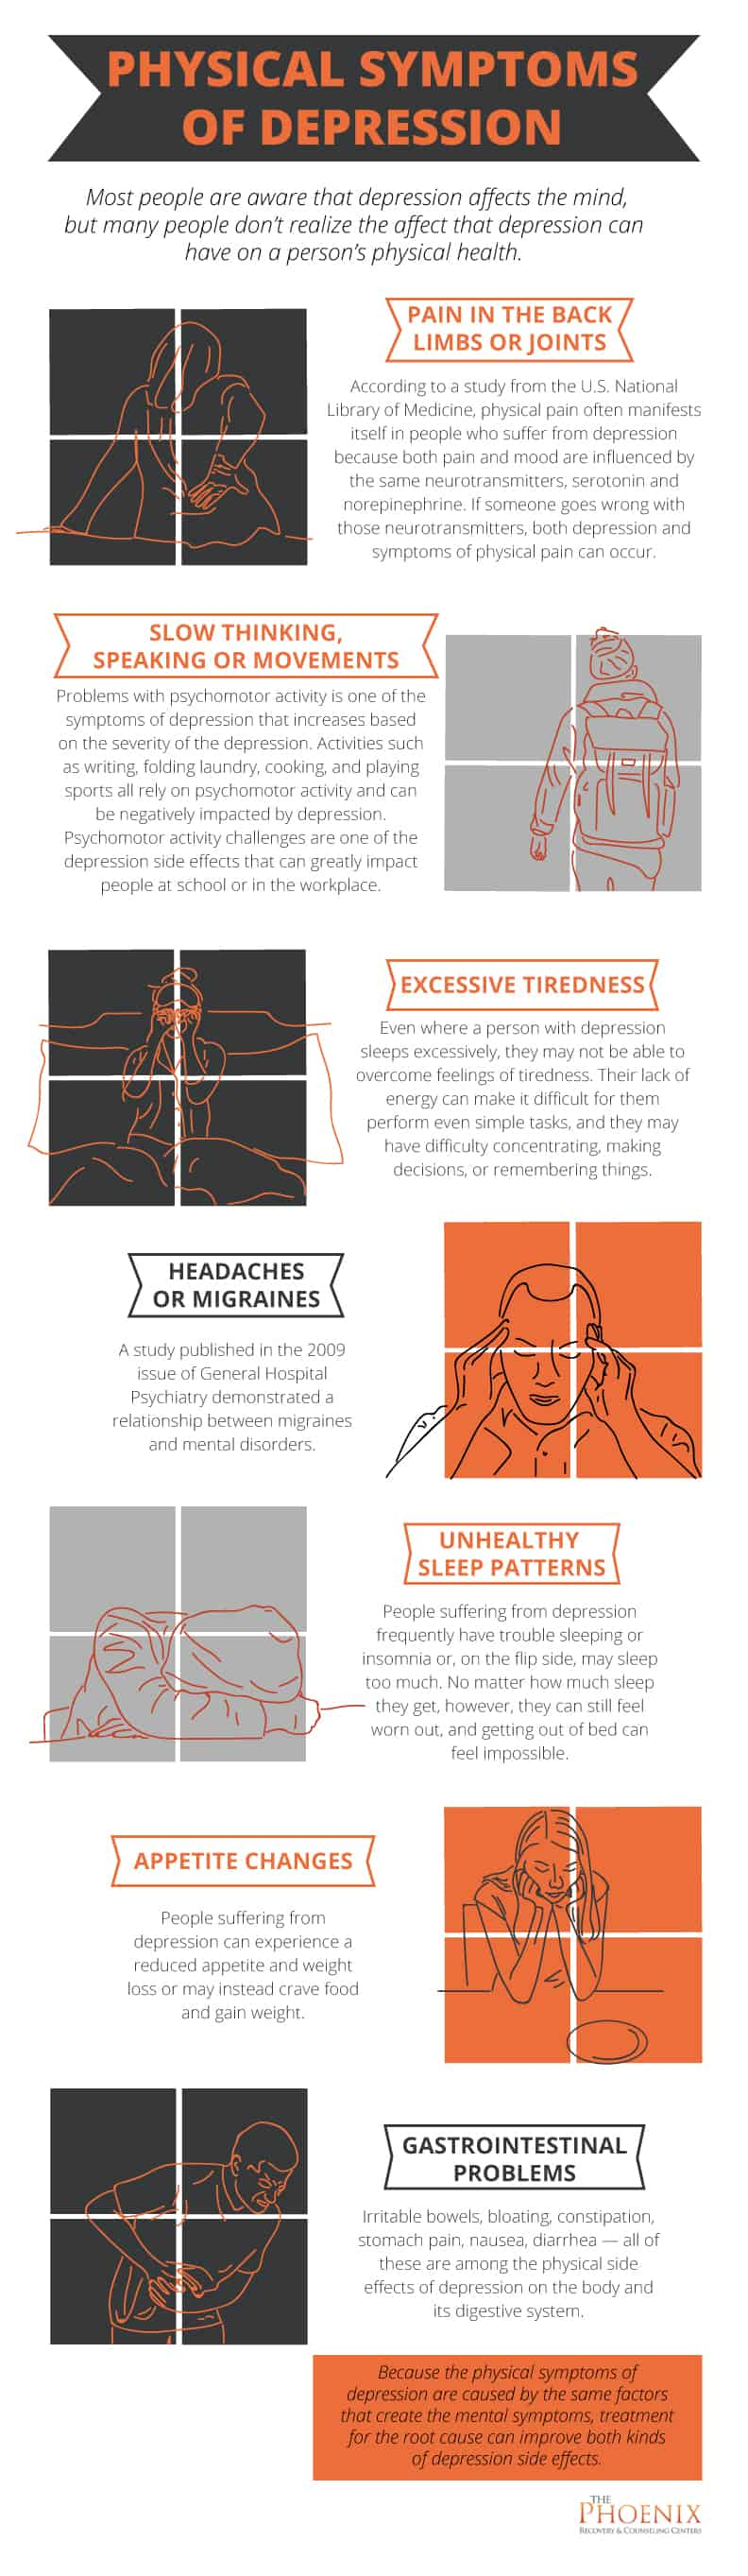 Physical Signs of Depression InfoGraphic